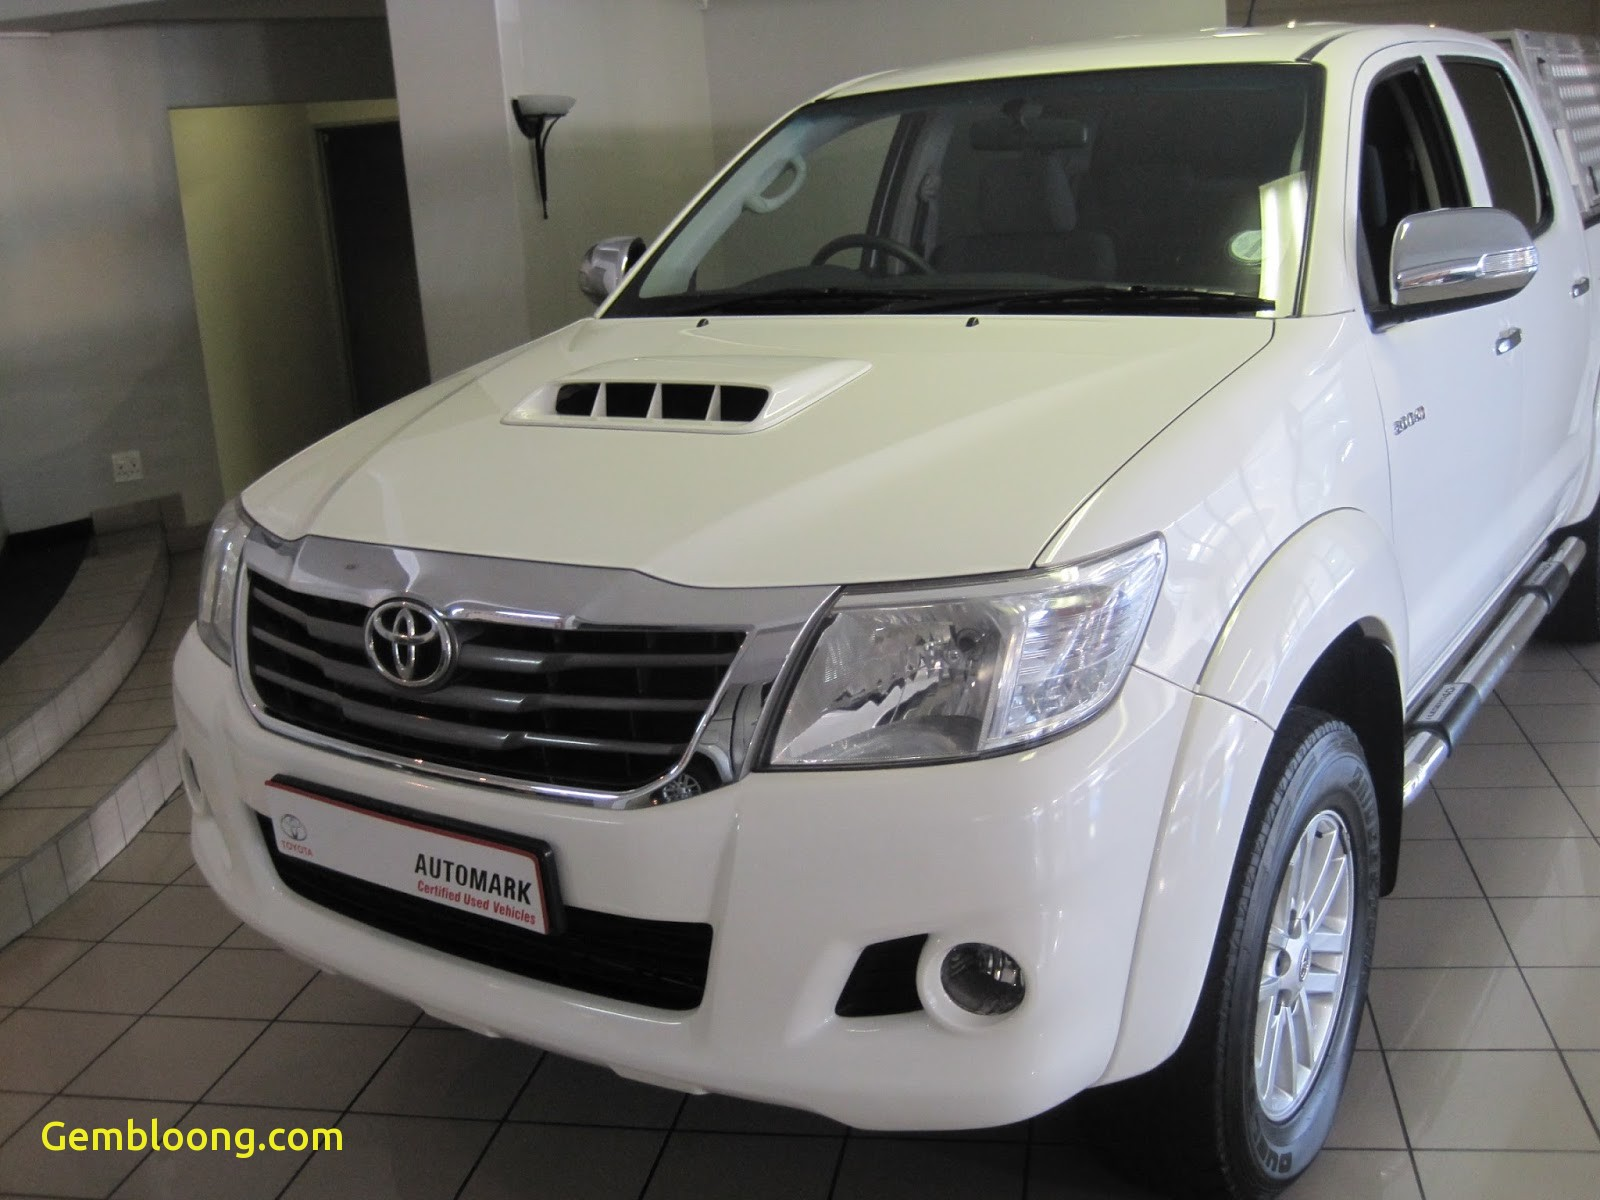 cars for sale by gumtree lovely gumtree second hand vehicles for sale cape town olx car